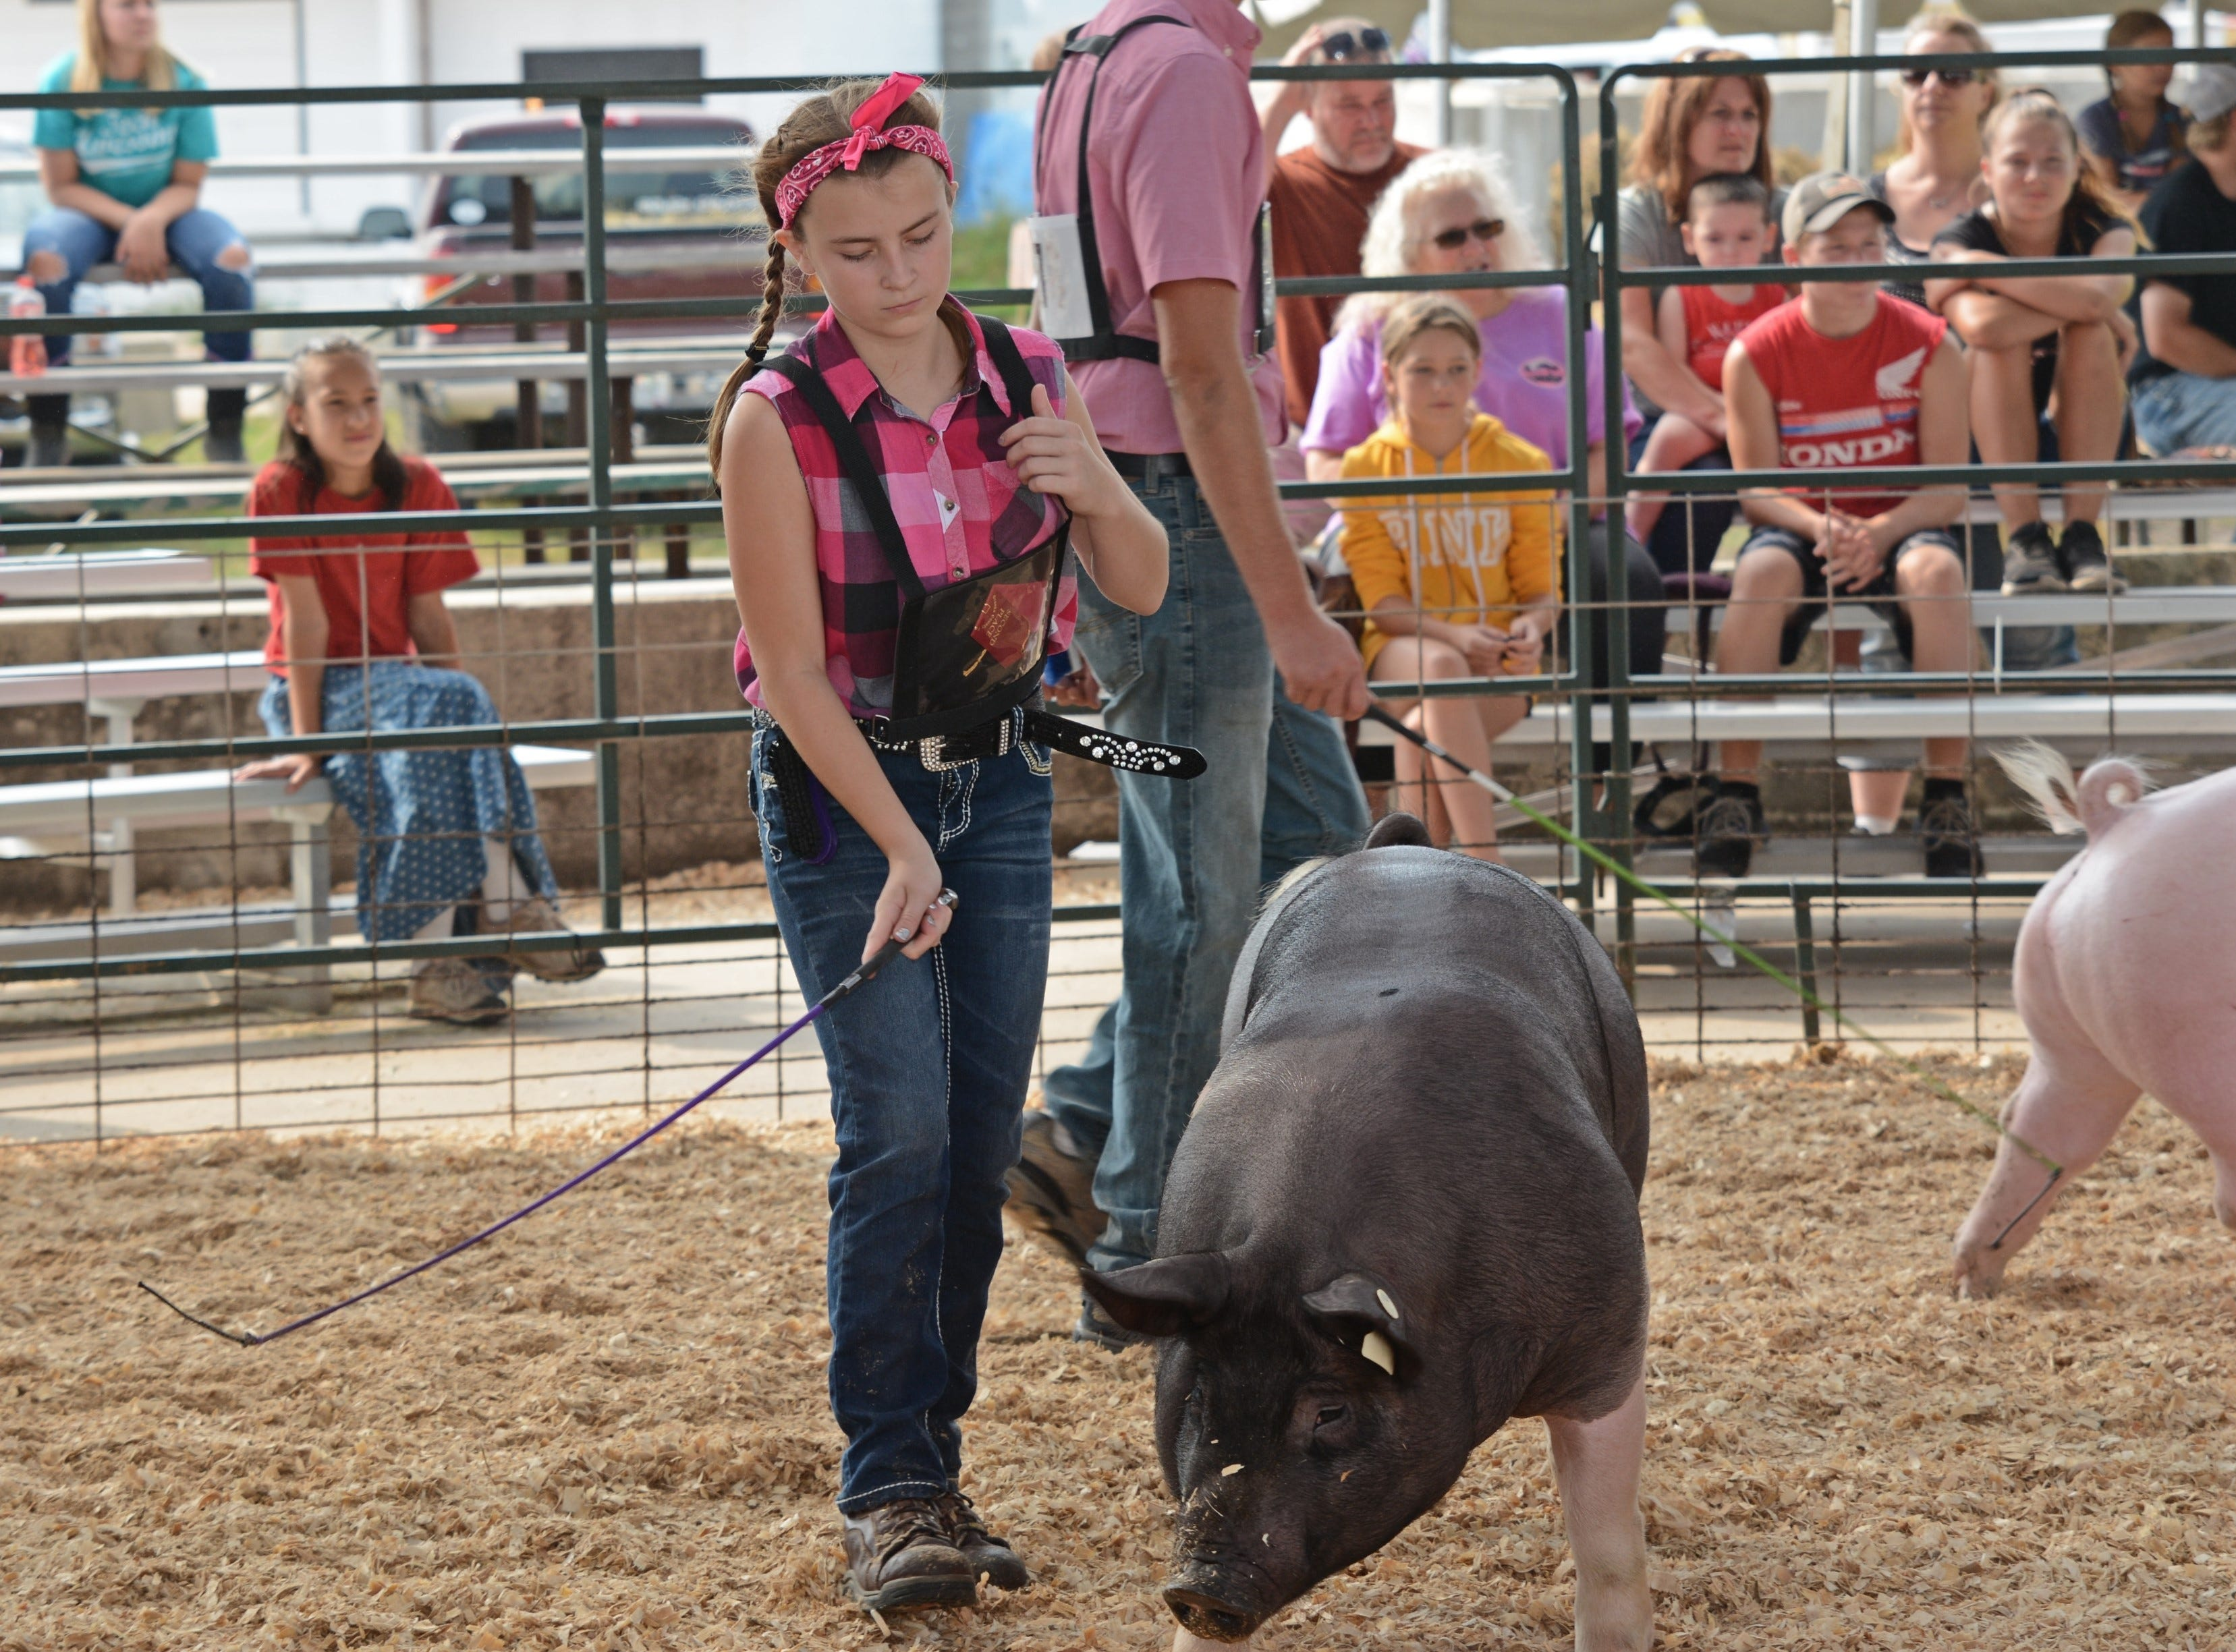 Amber Seitz of Morgan Badgers 4H Club shows her pig at the Swine Show at the Oconto County Fair on Friday, Aug. 17. She won the Swine Heavyweight Class.